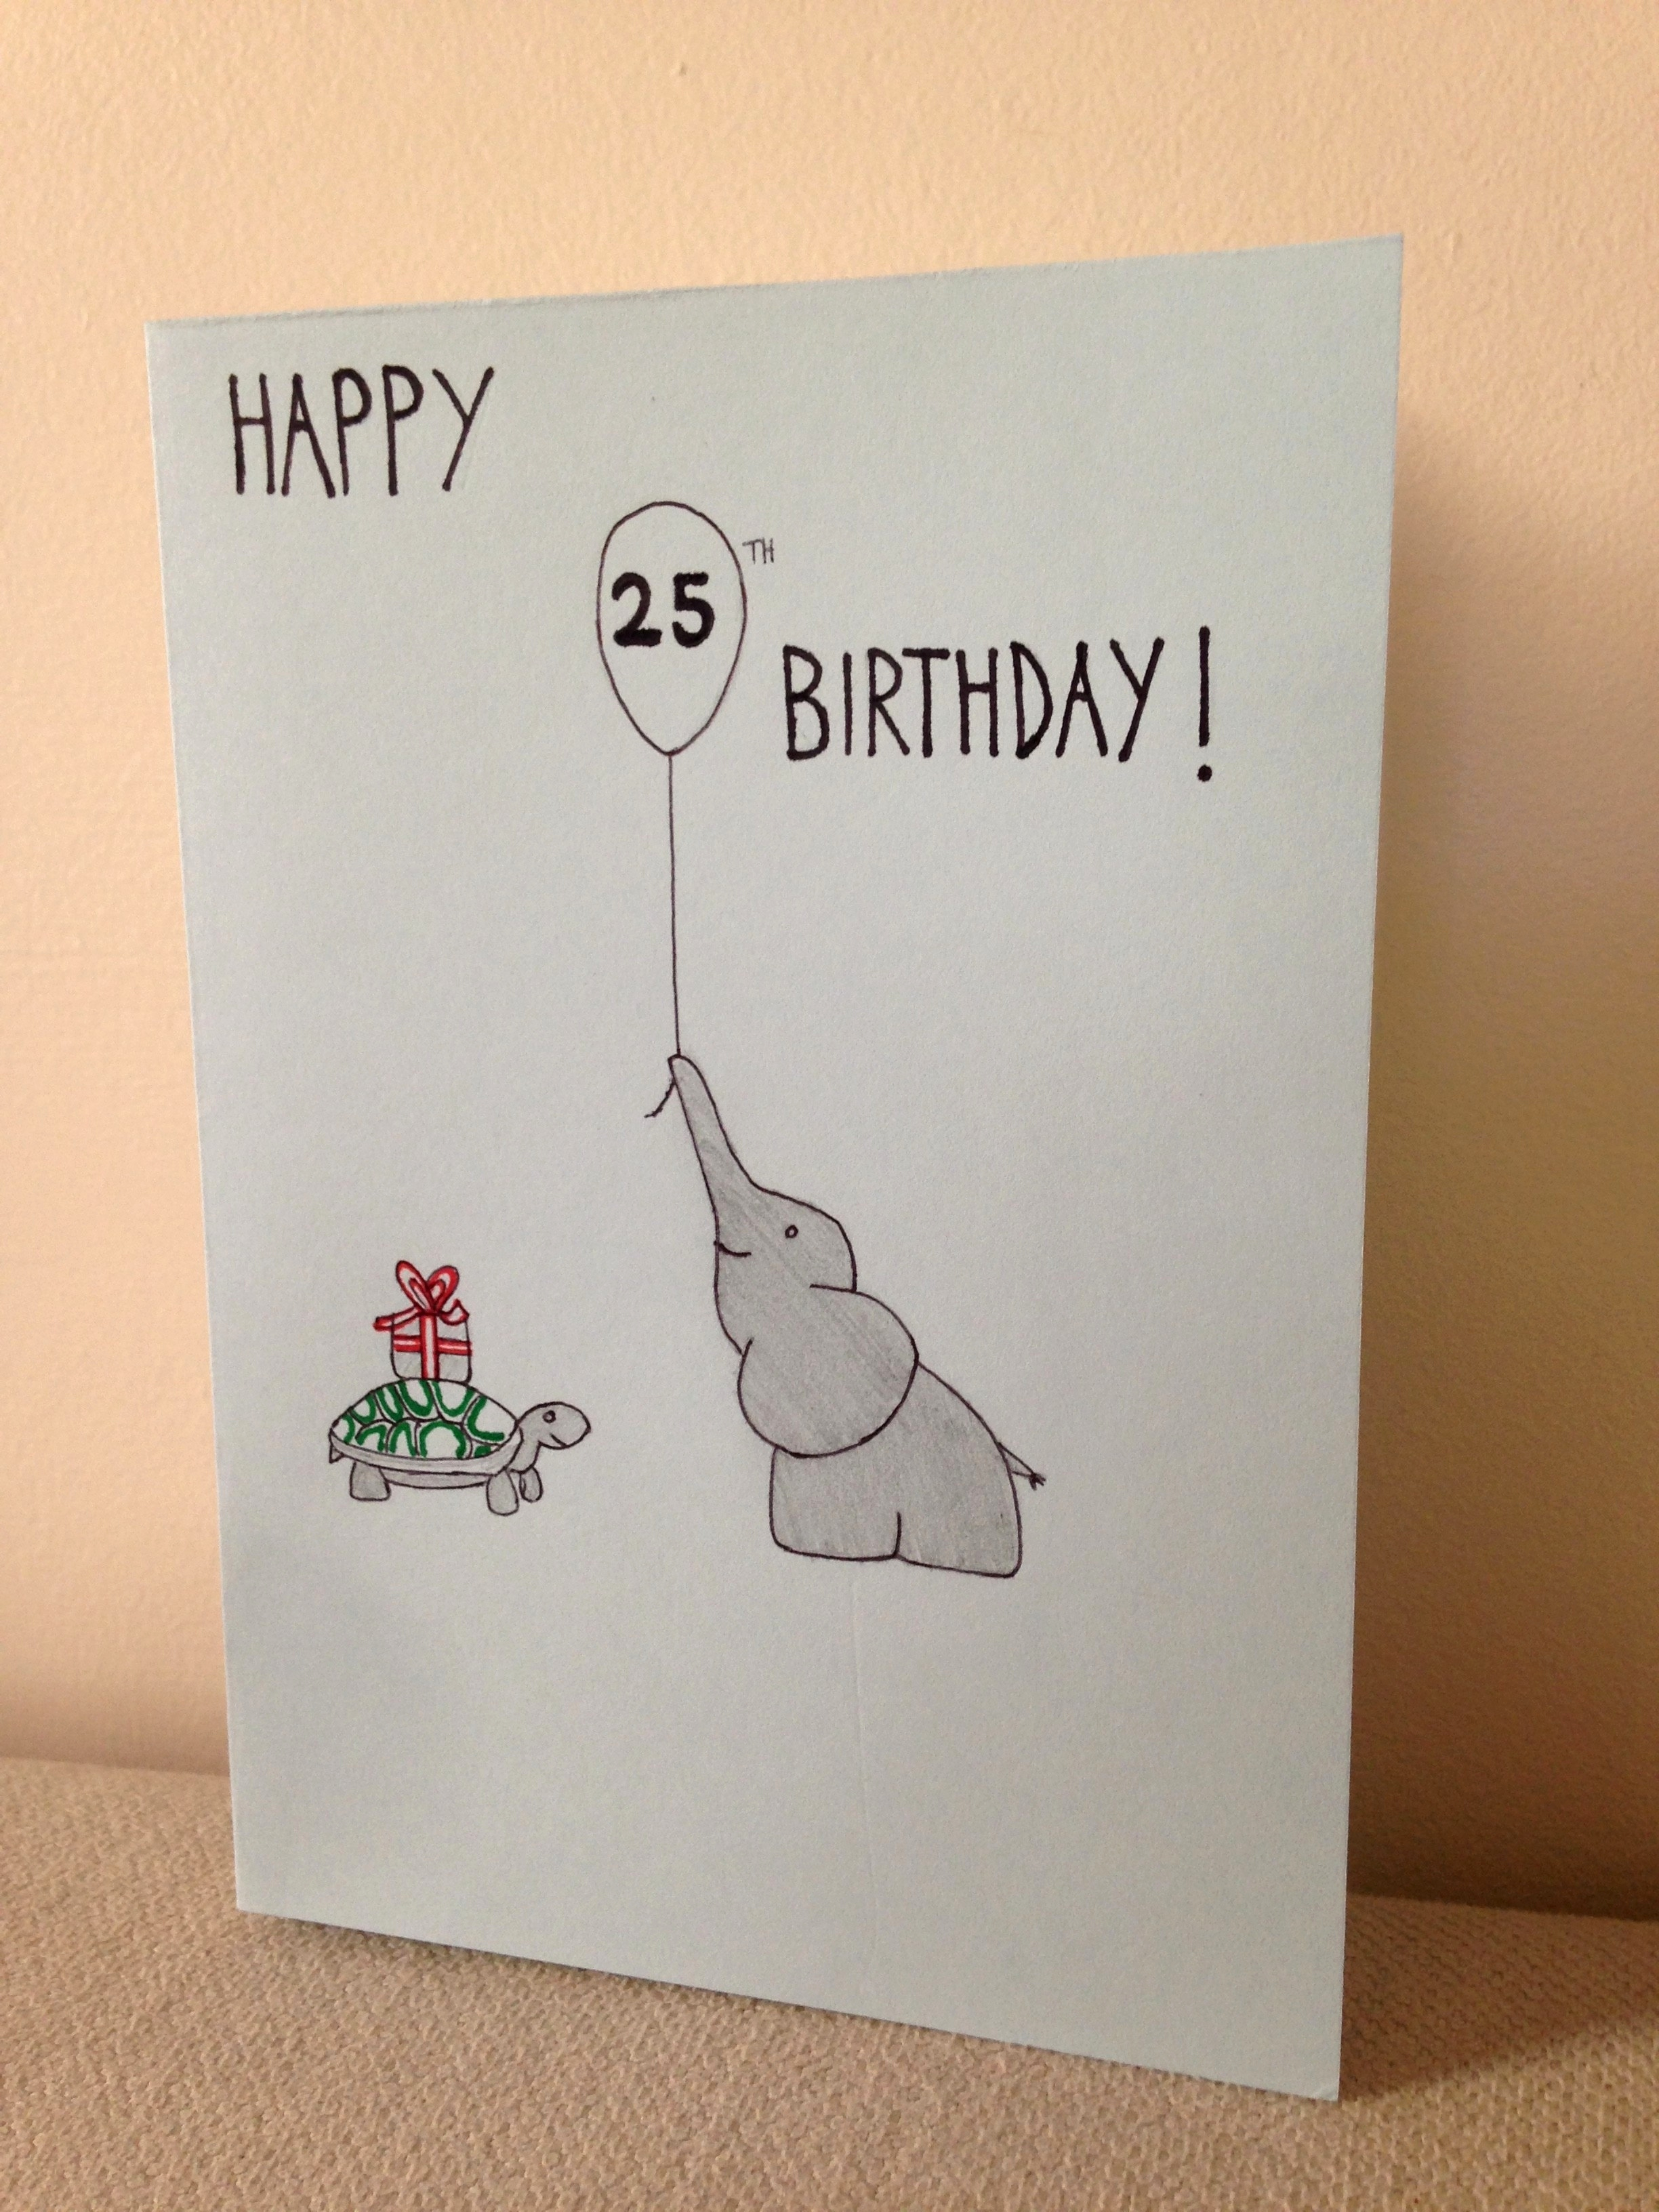 Ideas For Making Birthday Cards At Home Birthday Card Ideas To Make At Home Beautiful Homemade Greeting